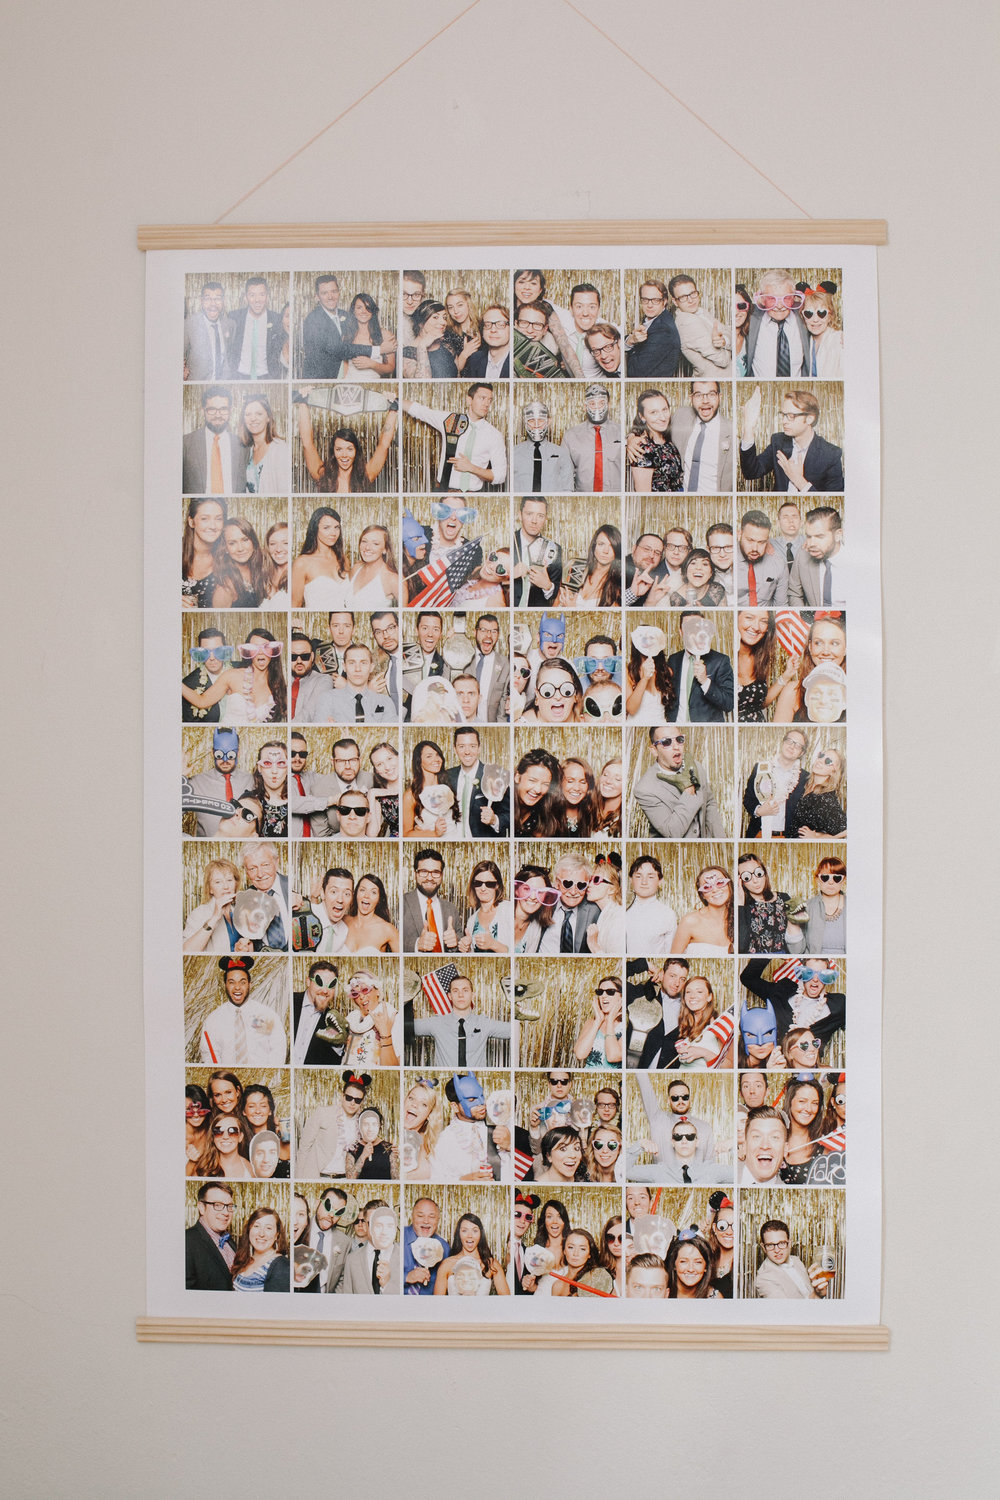 10 Awesomely Different Ways to Display Your Photo Booth Pictures | The Danger Booth